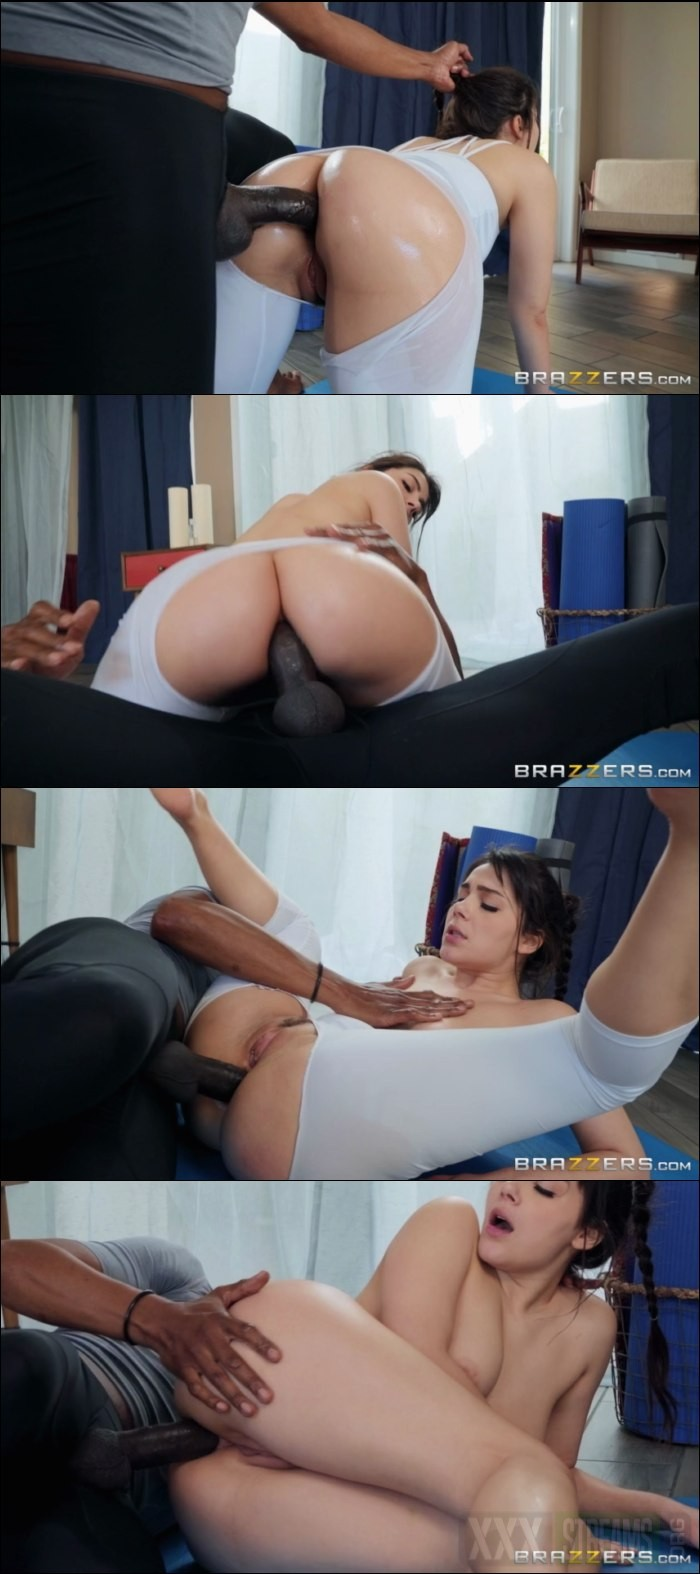 Anal%20 %20Valentina%20Nappi%20 %20Stretch%20That%20Ass%20Out%20 2019 %20All%20Sex %20Anal %20Big%20